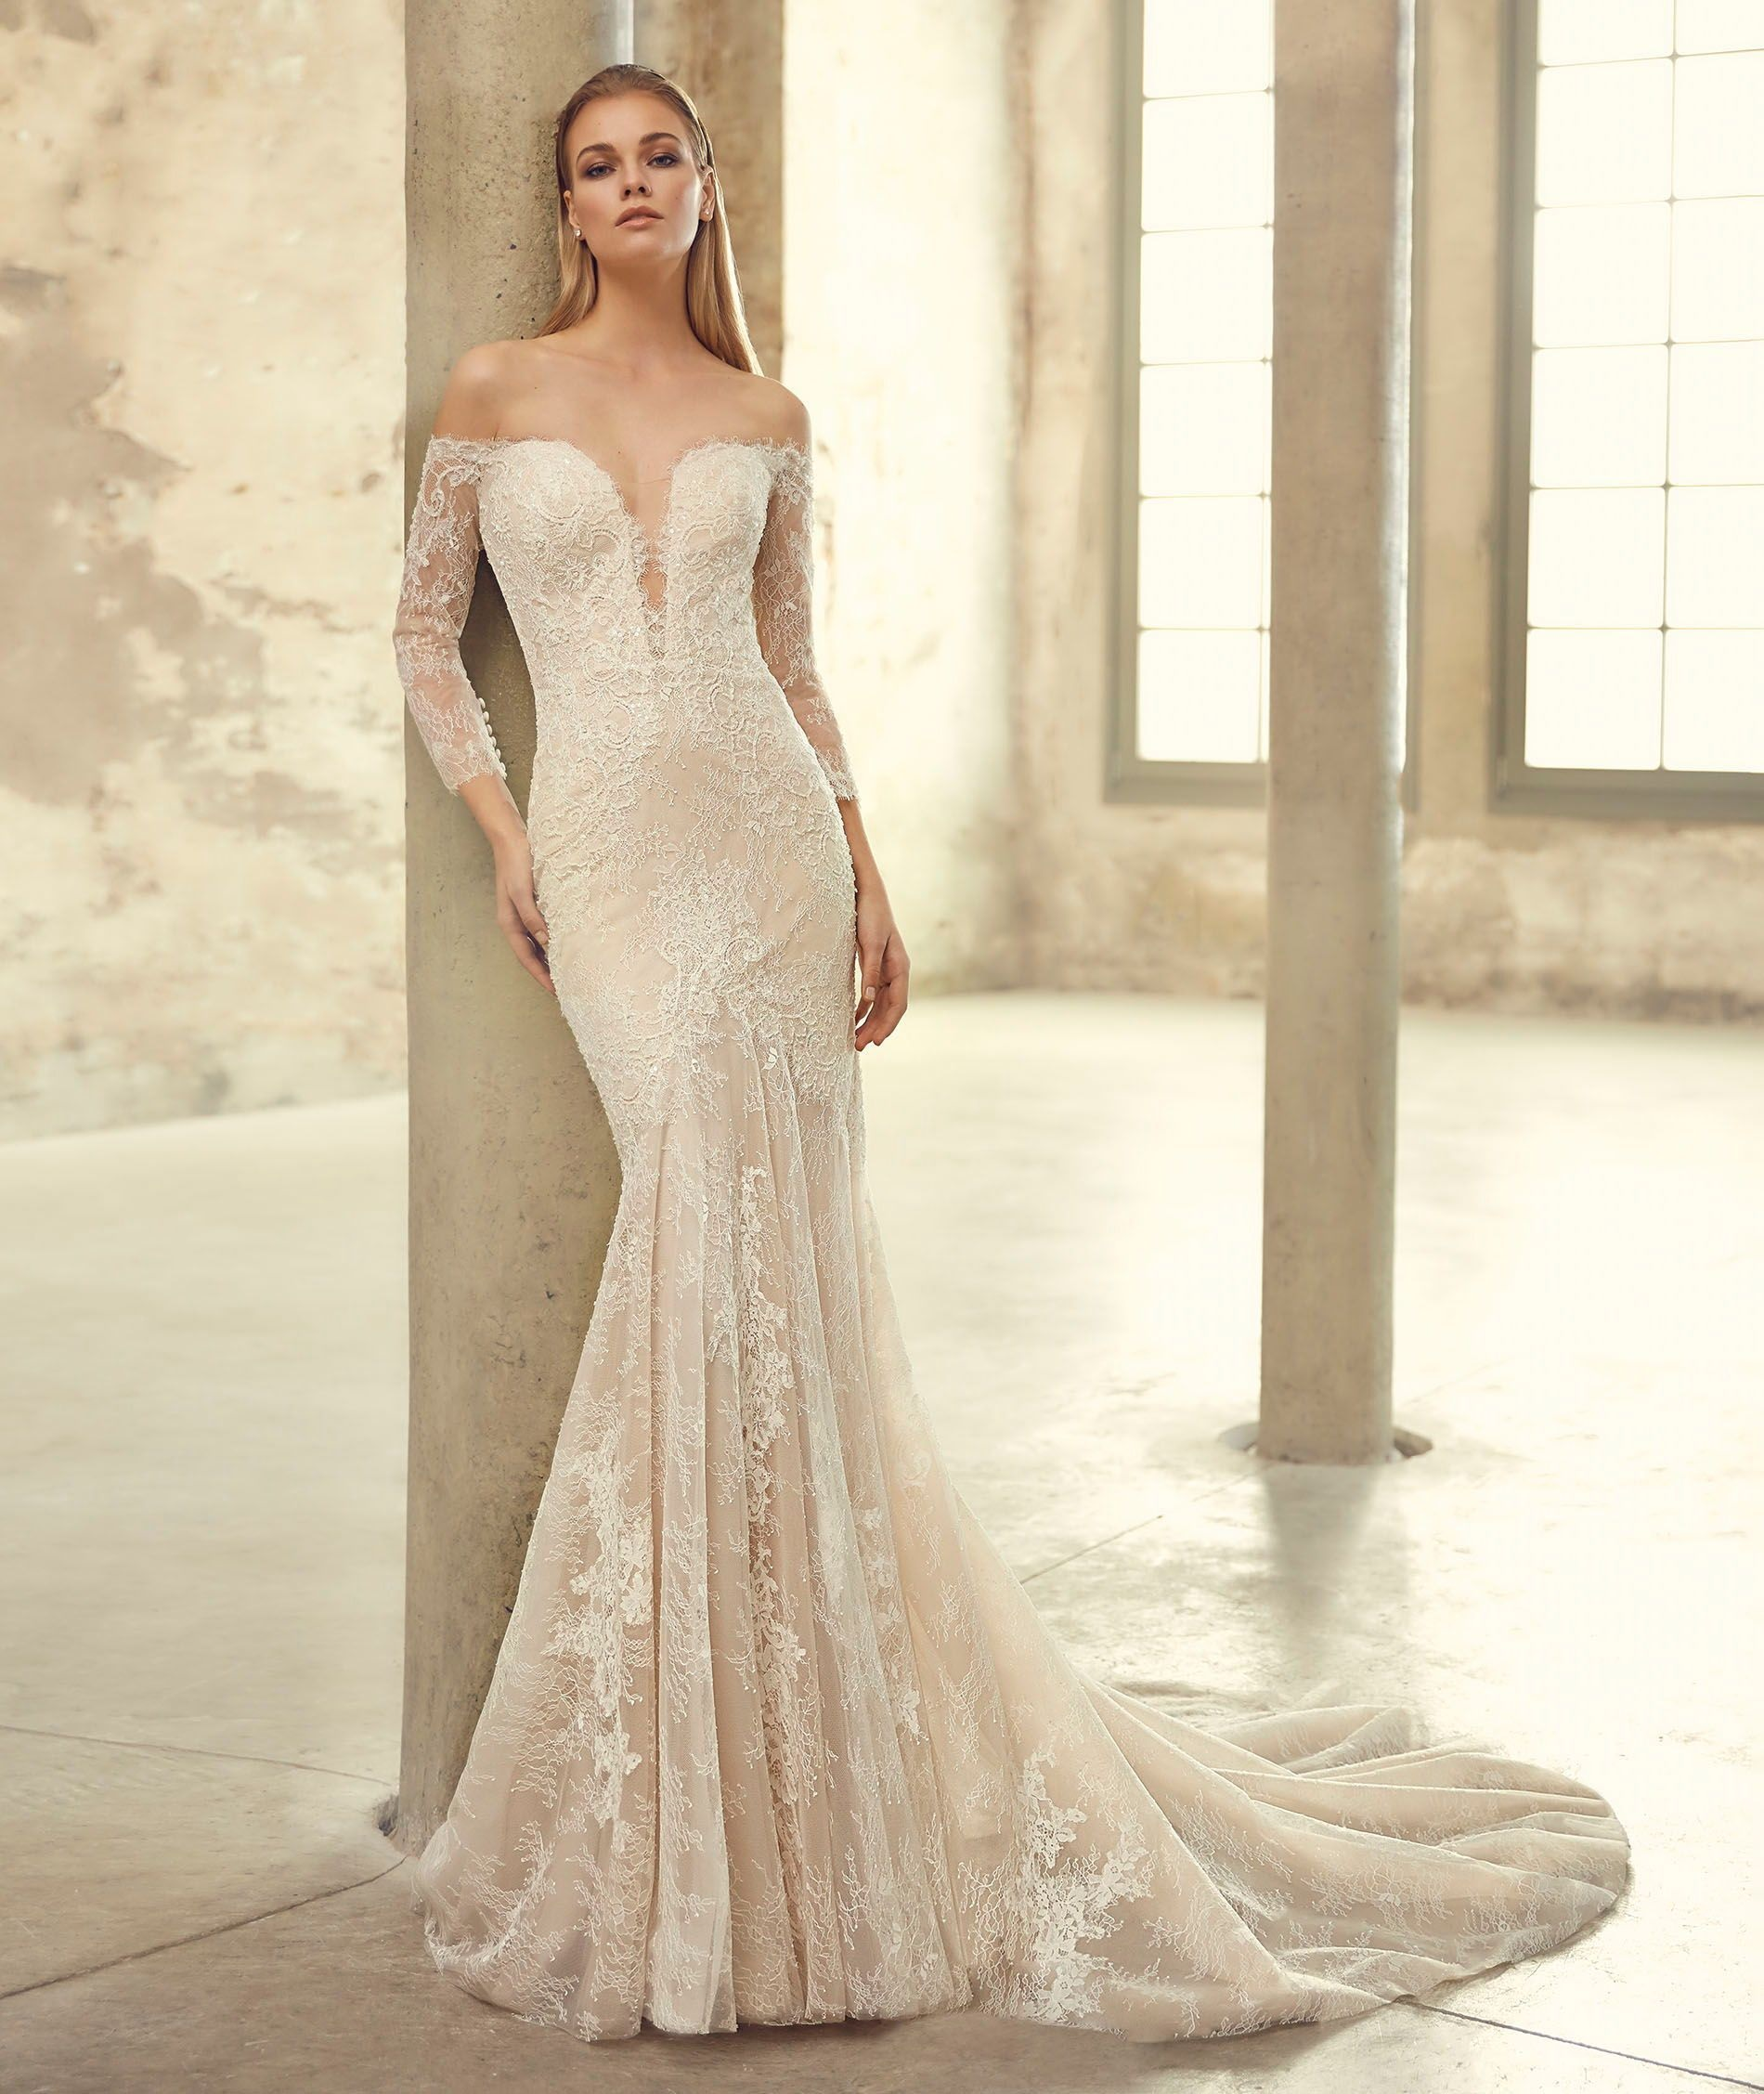 Fishtale wedding gown